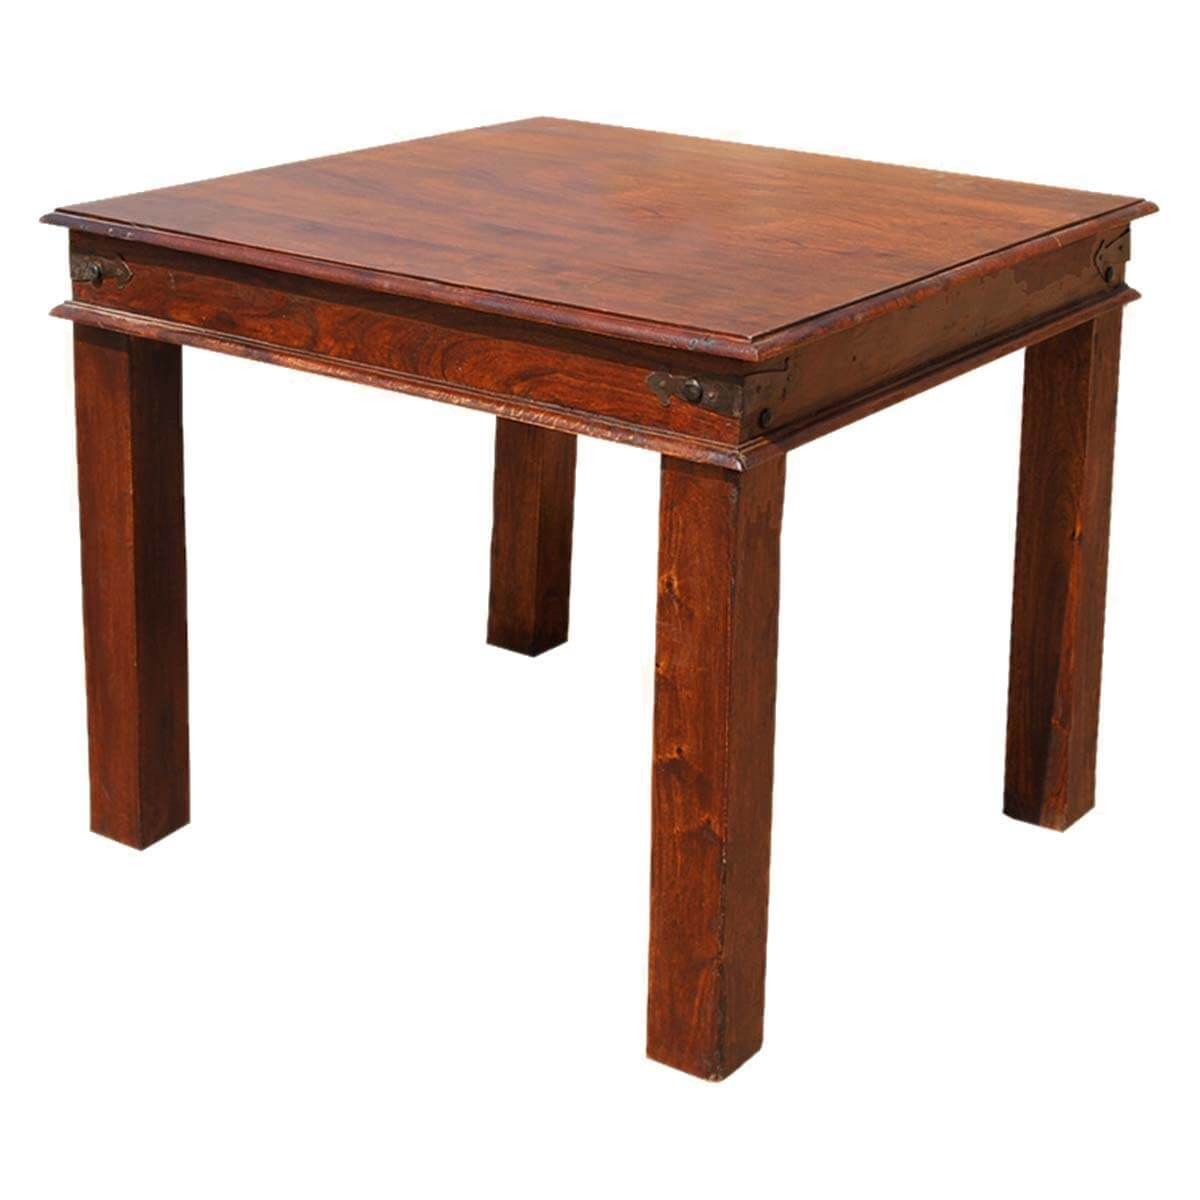 Grogan rustic solid wood square dining table Rustic wood dining table